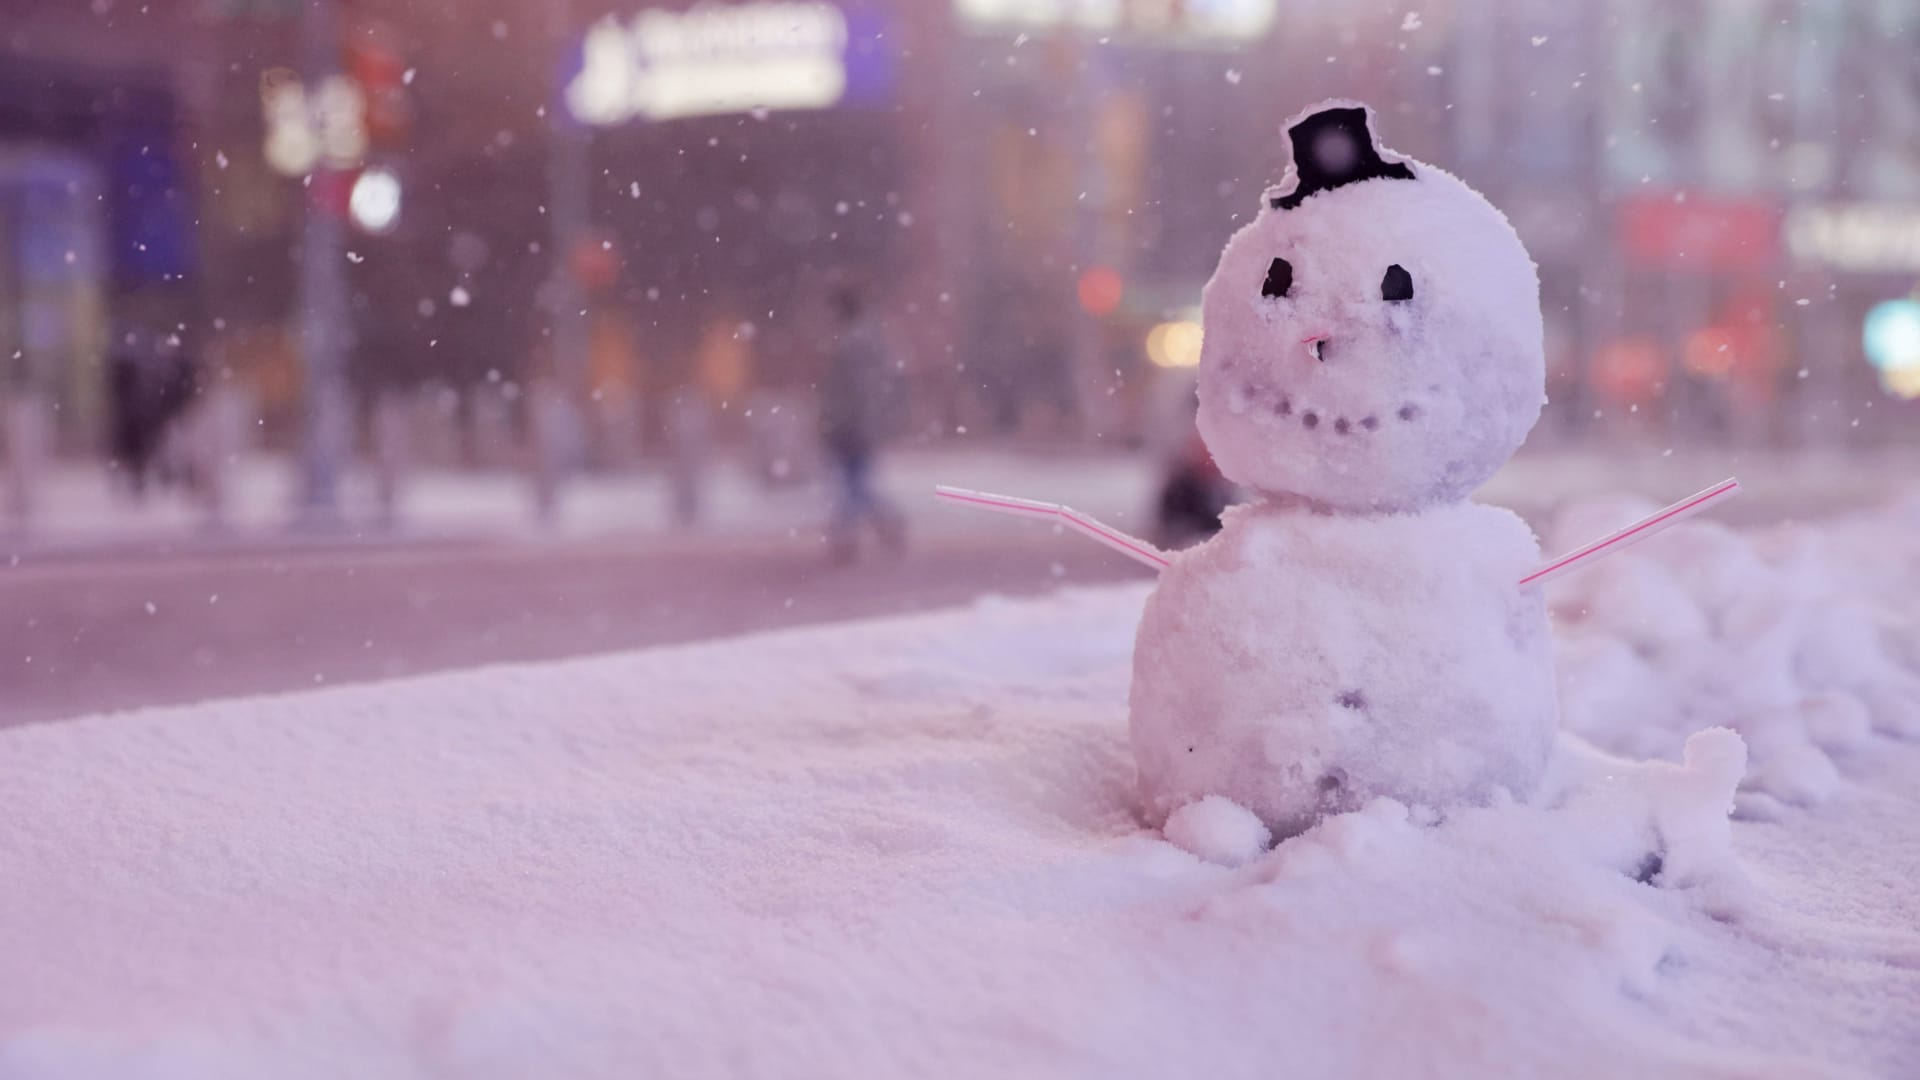 A snowman is seen as snow begins to fall in Times Square during a Nor'easter, during the coronavirus disease (COVID-19) pandemic in the Manhattan borough of New York City, New York, U.S., December 16, 2020.